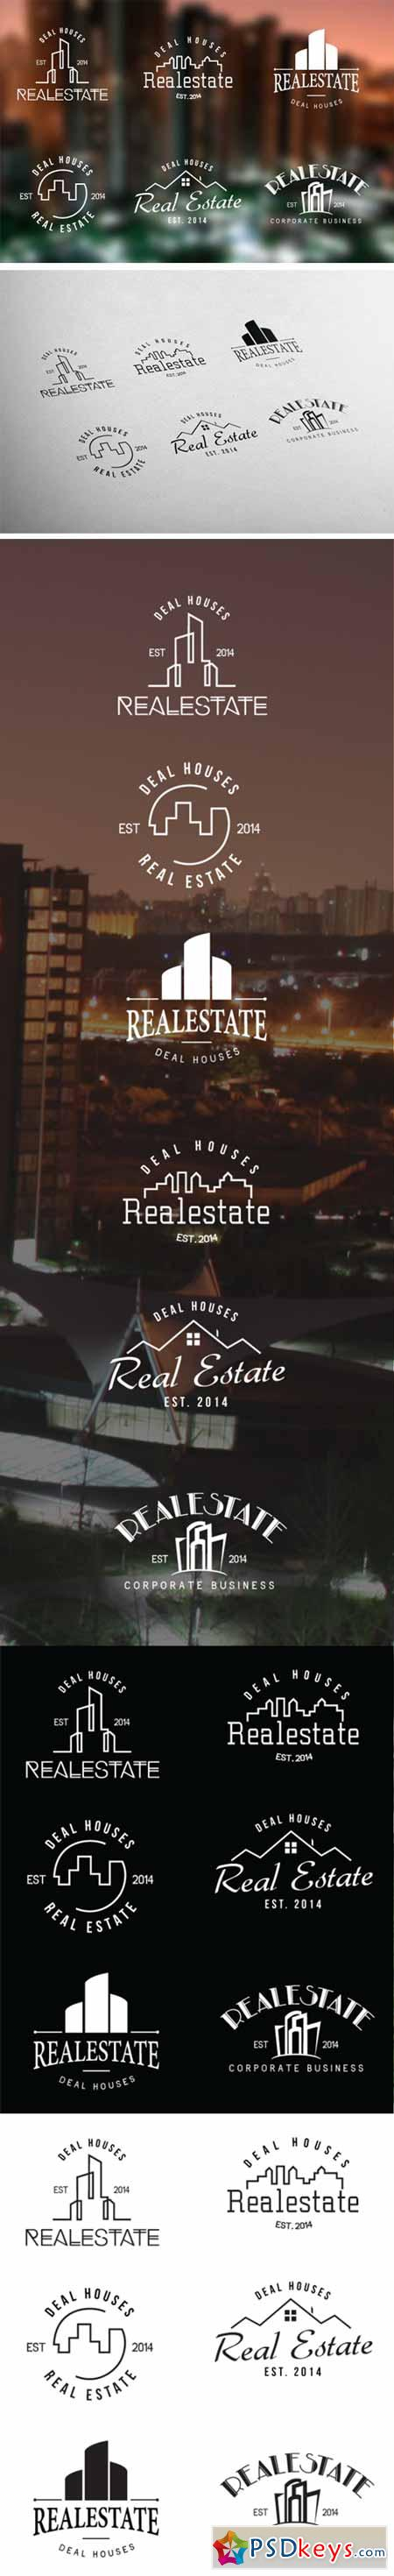 Real Estate Retro Vintage Badges 55743